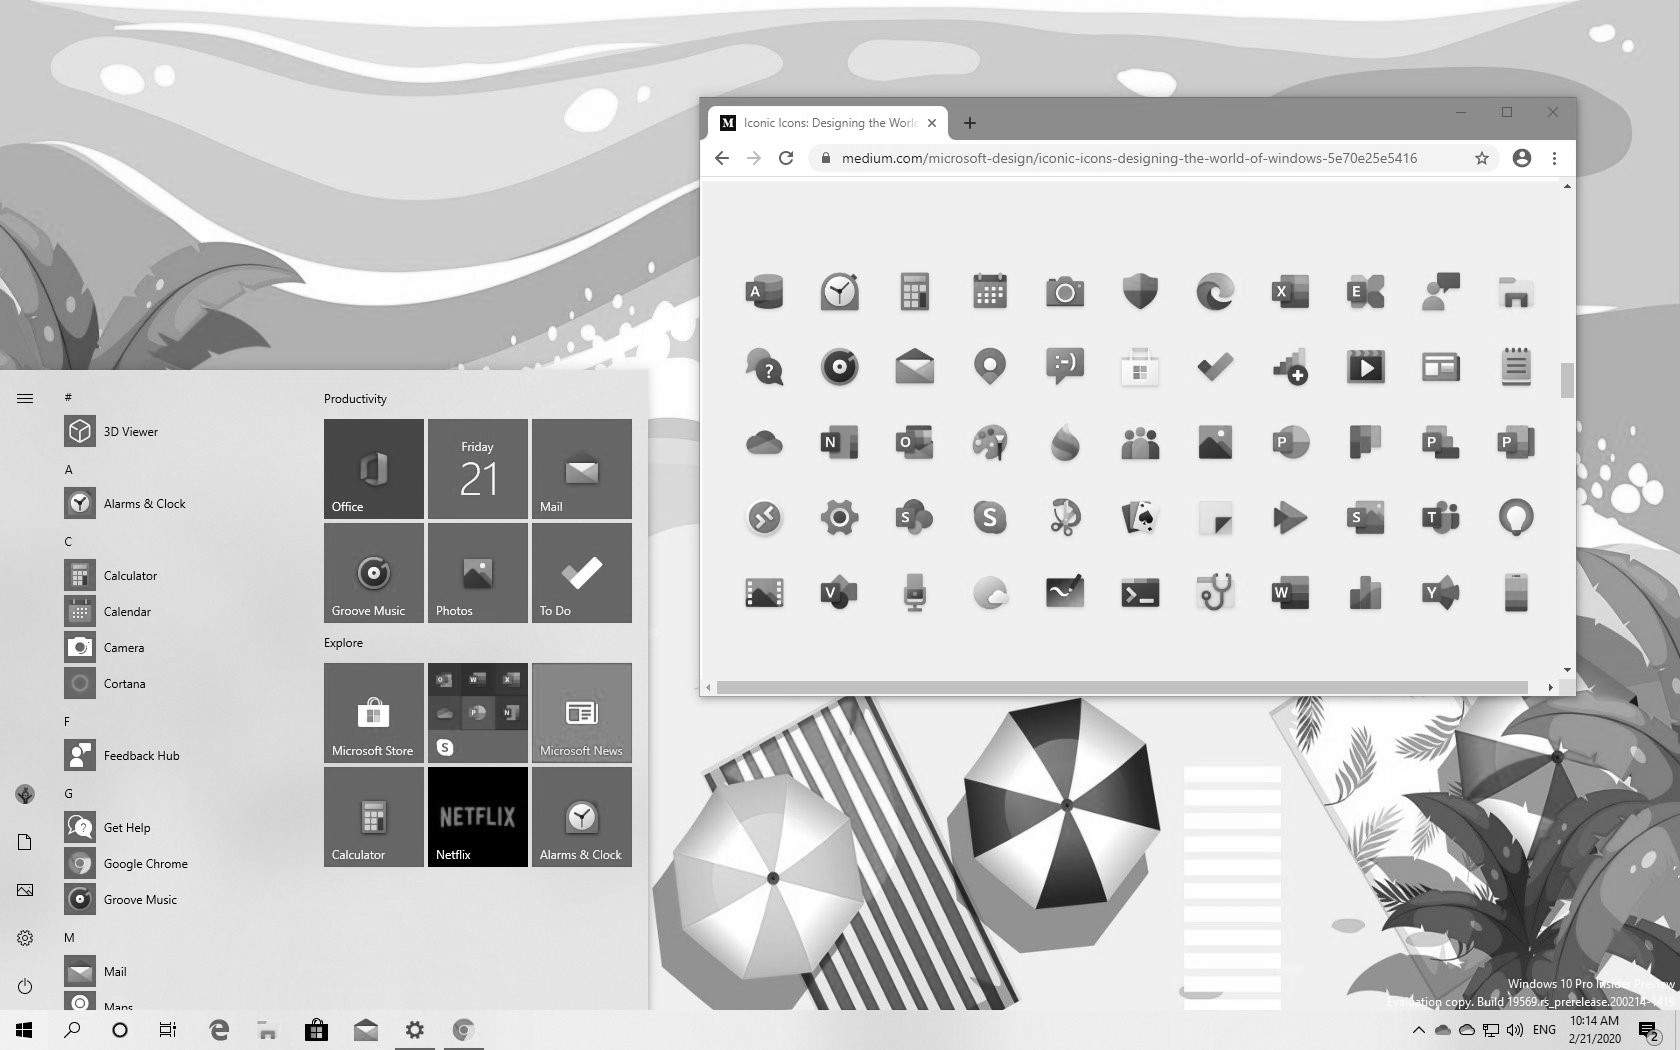 Windows 10 new icons in this Weekly Digest